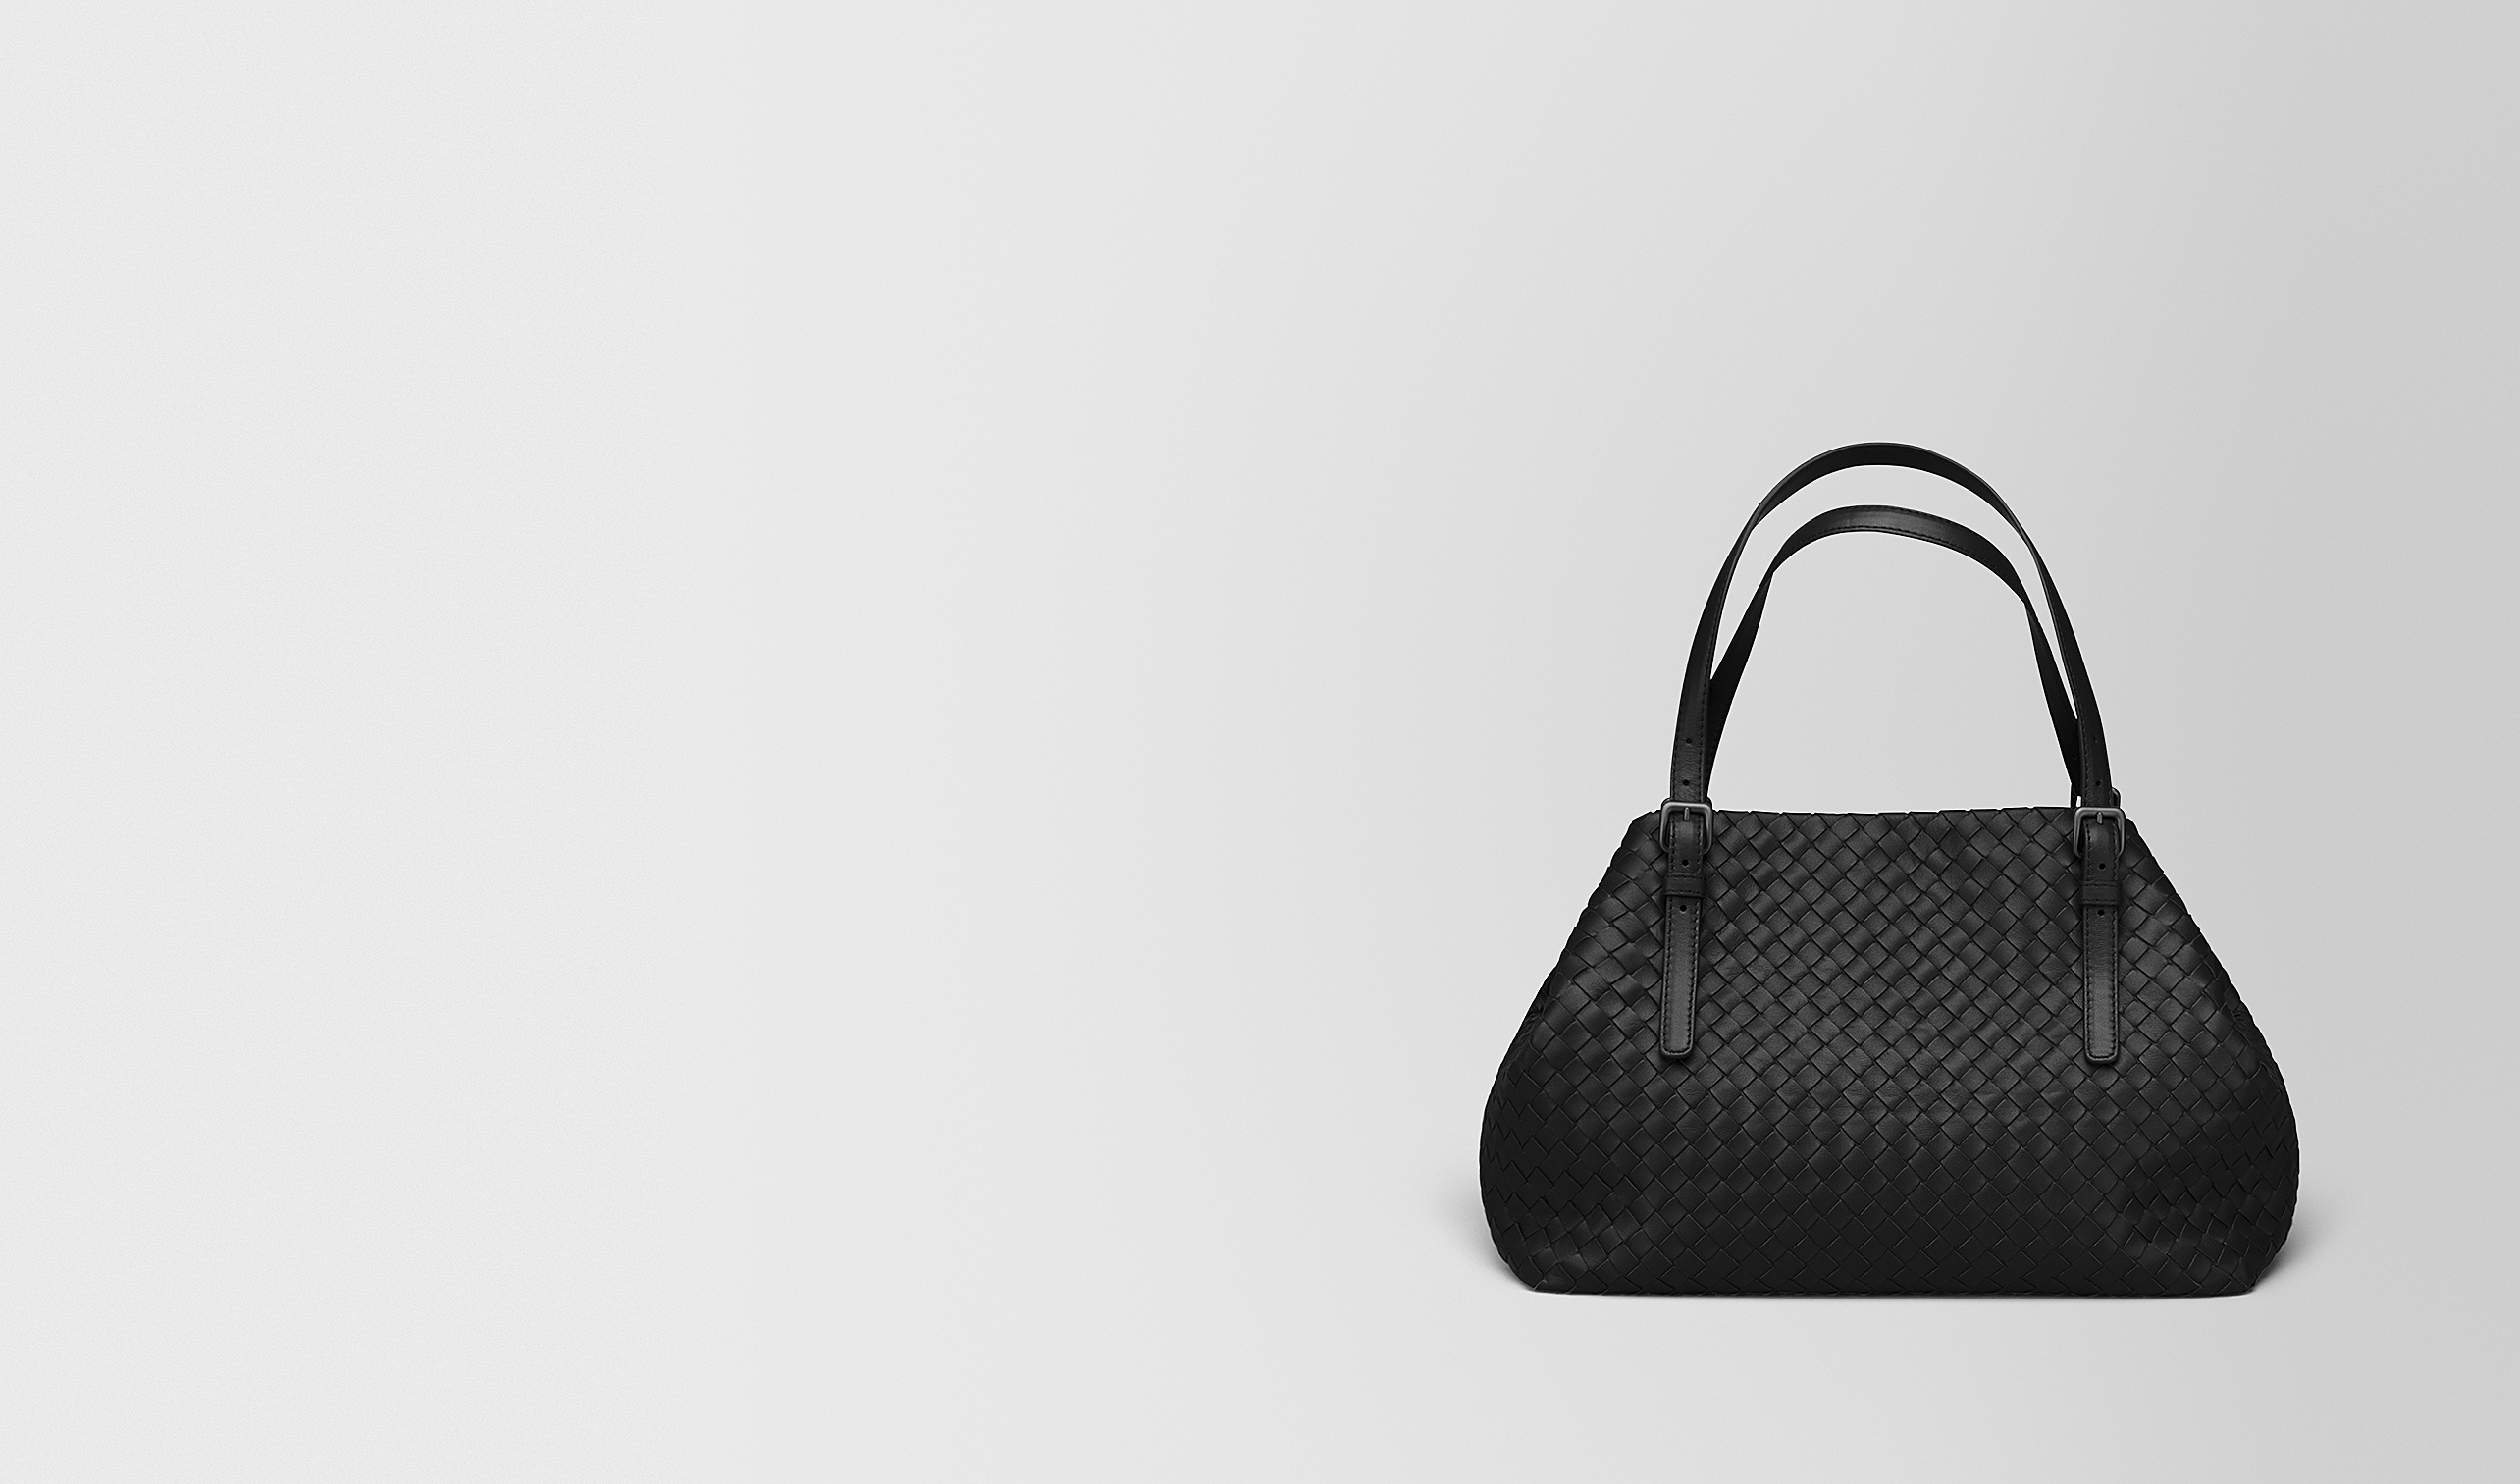 BOTTEGA VENETA Shopper D MITTLERE TOTE BAG AUS INTRECCIATO NAPPA IN NERO pl